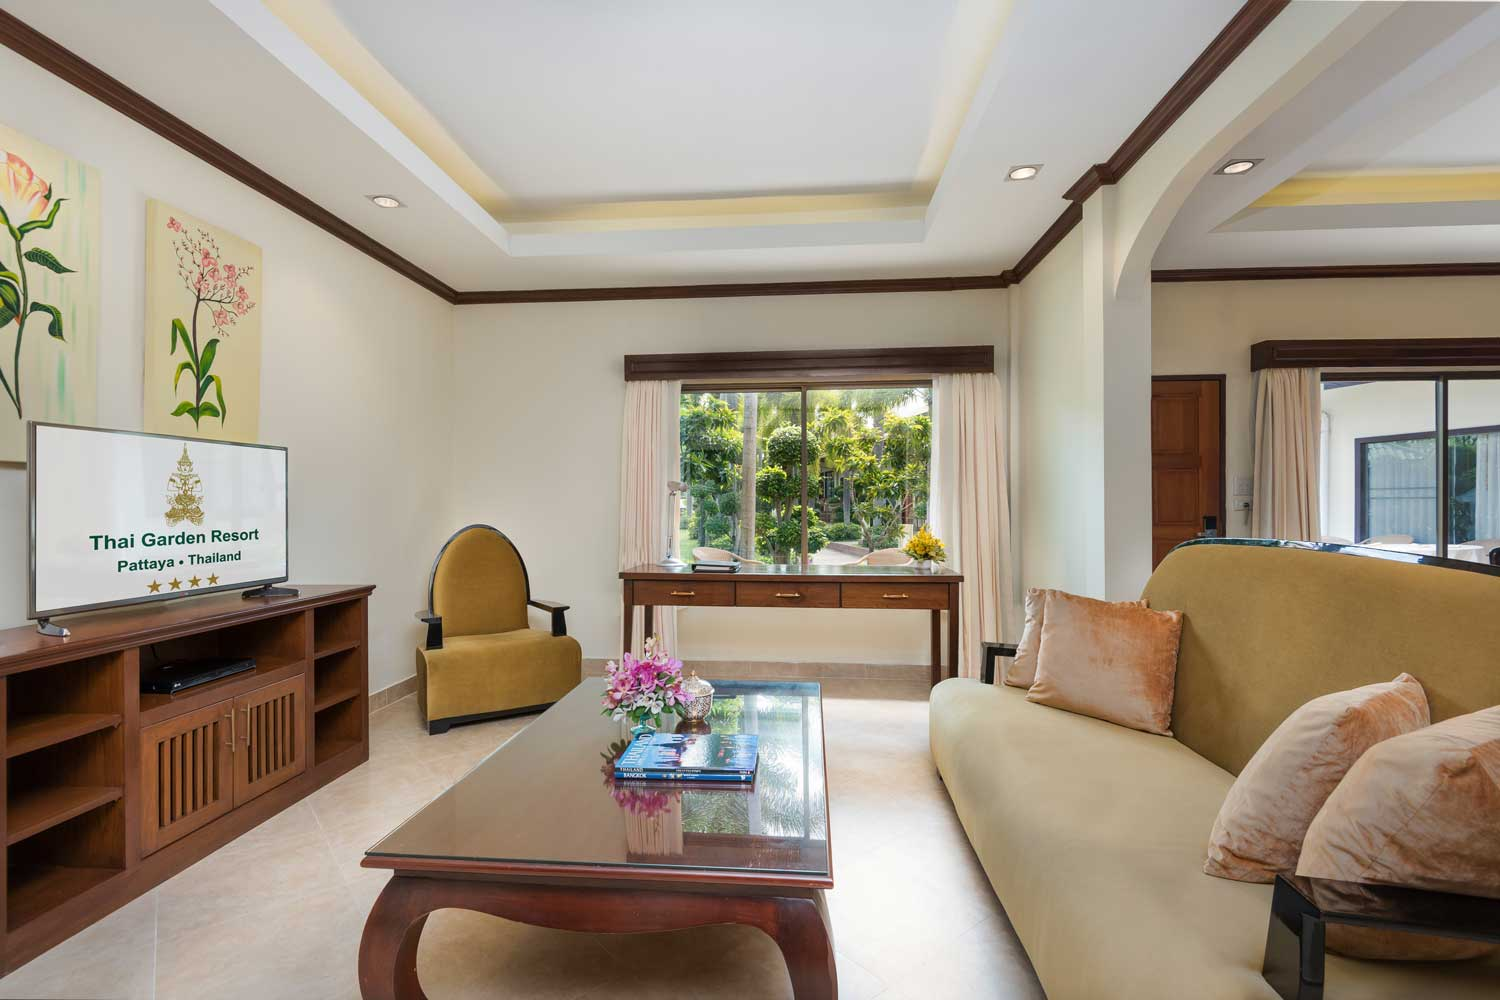 The living room of a two-Bedroom Apartment hotel room with a garden view of the Thai Garden Resort in Pattaya, Thailand